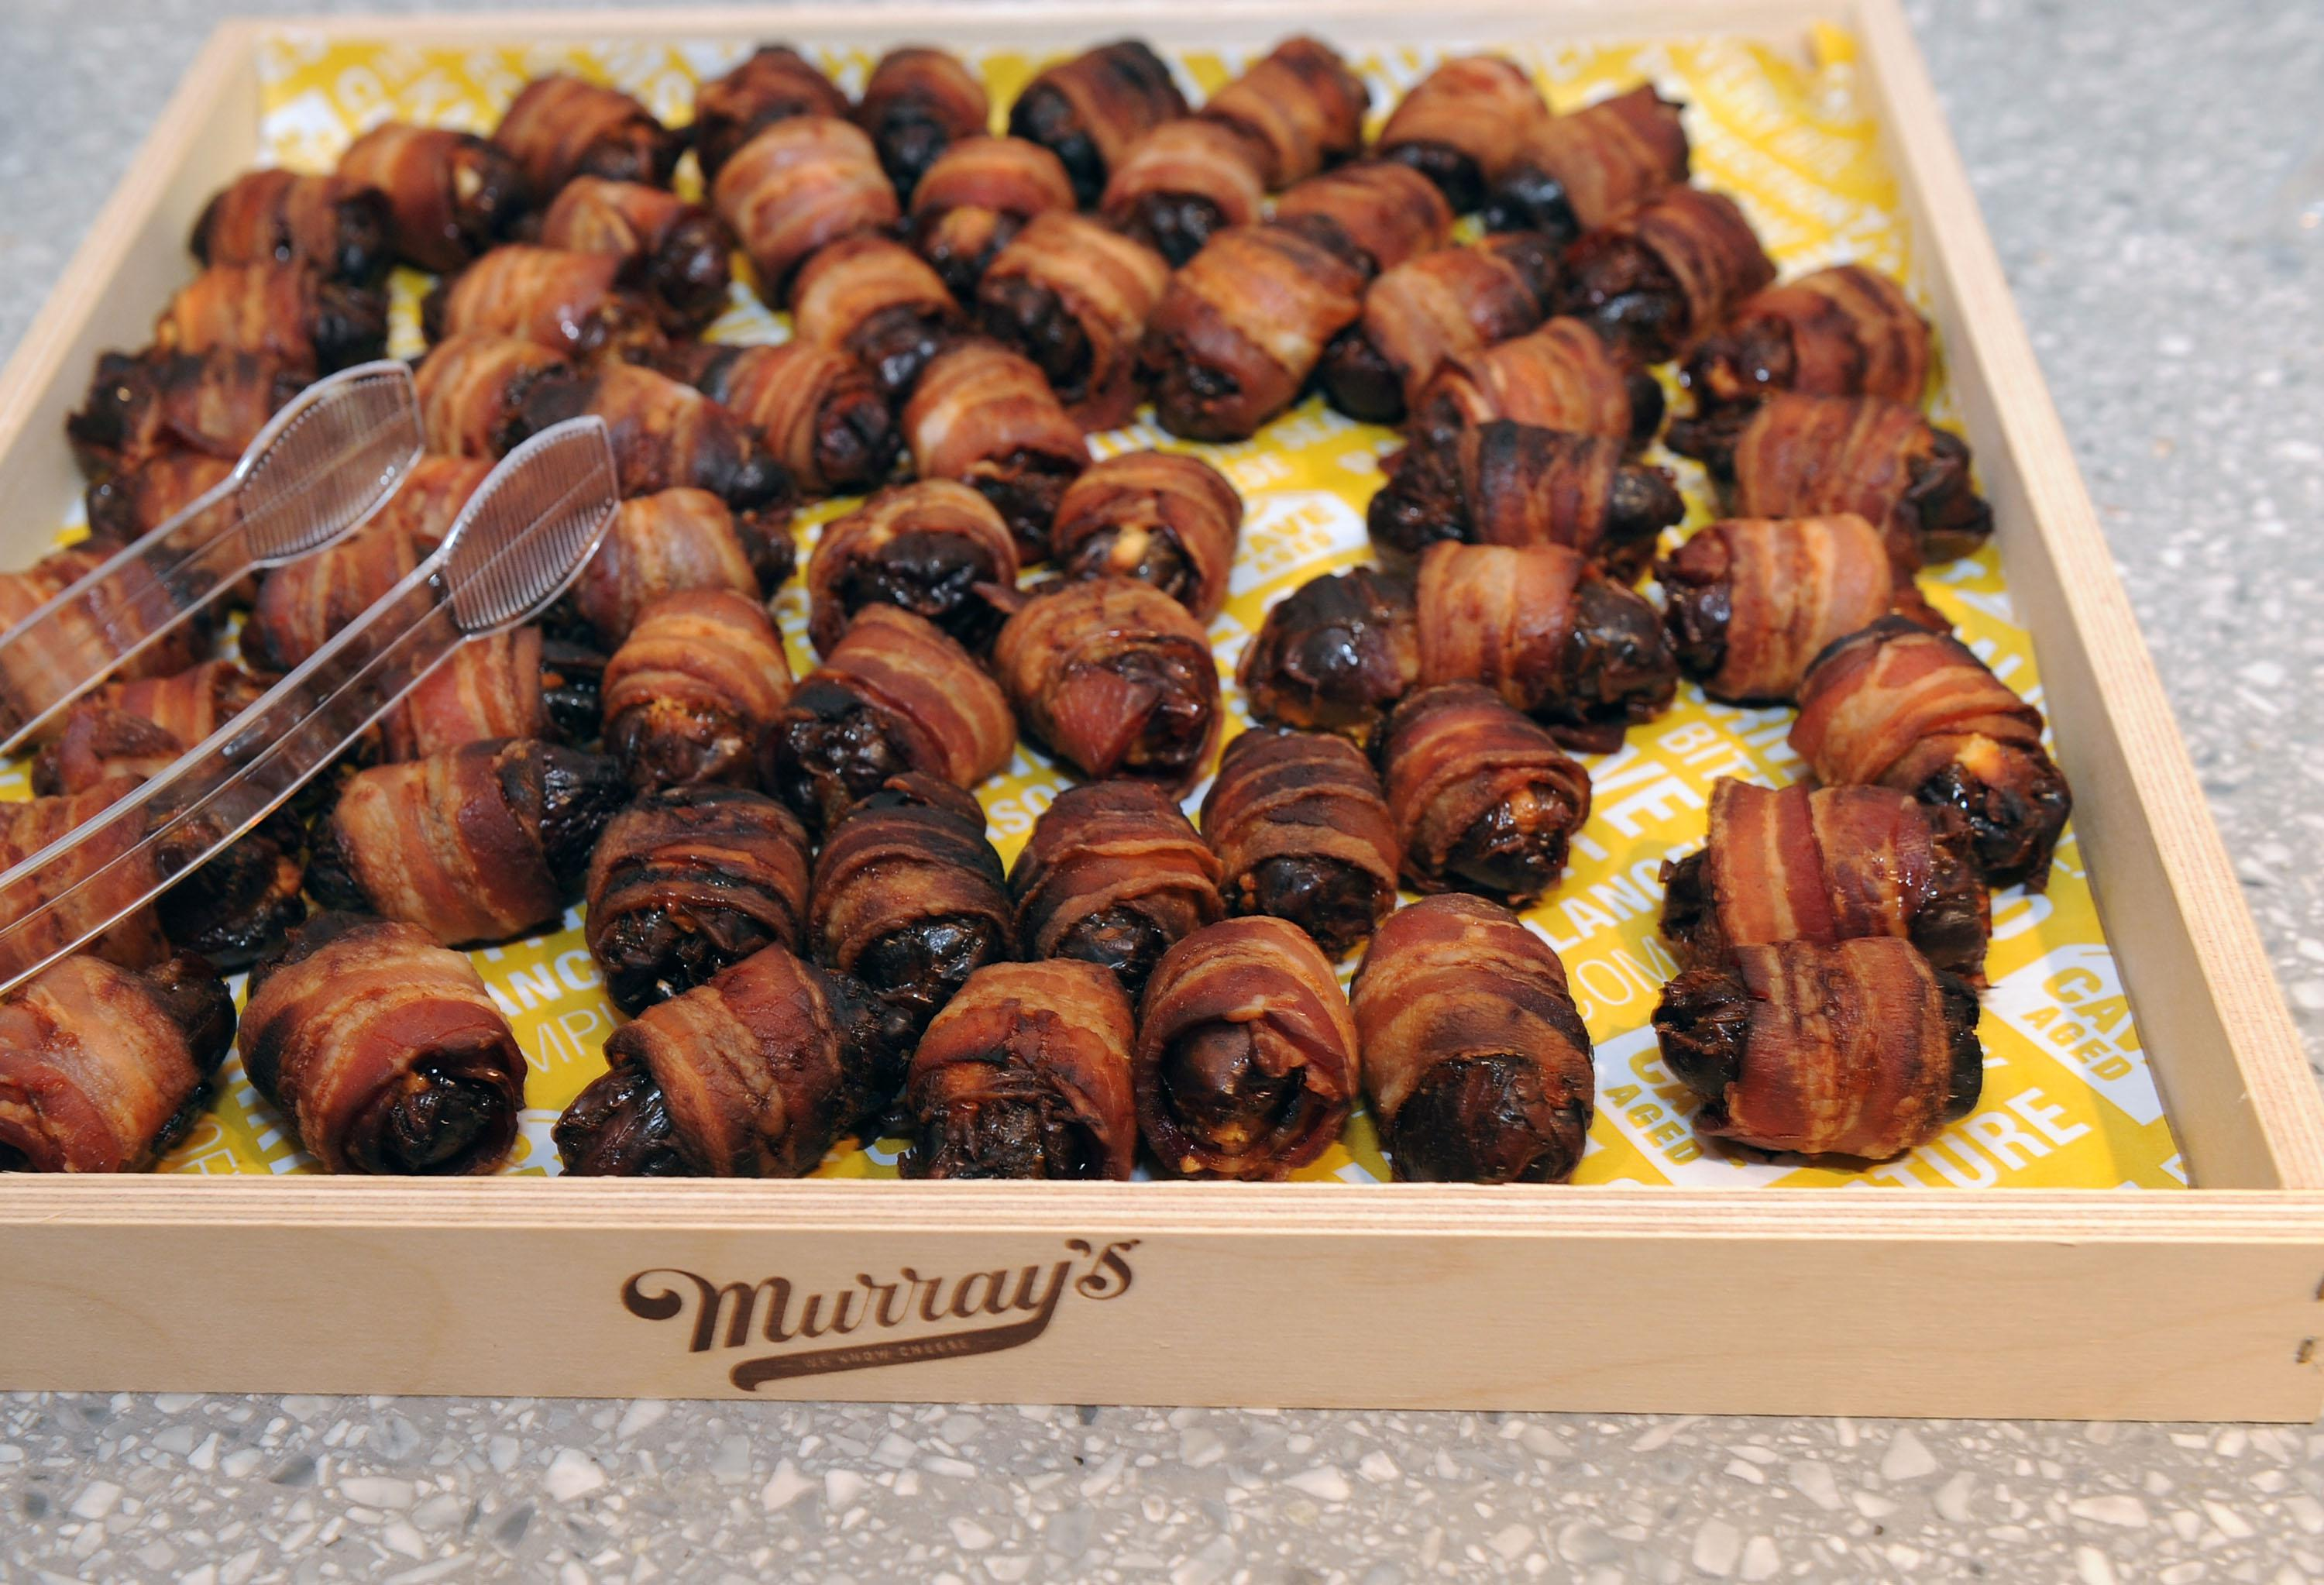 Bacon-wrapped figs at a storytelling event sponsored by New York Magazine and WeWork on June 20.